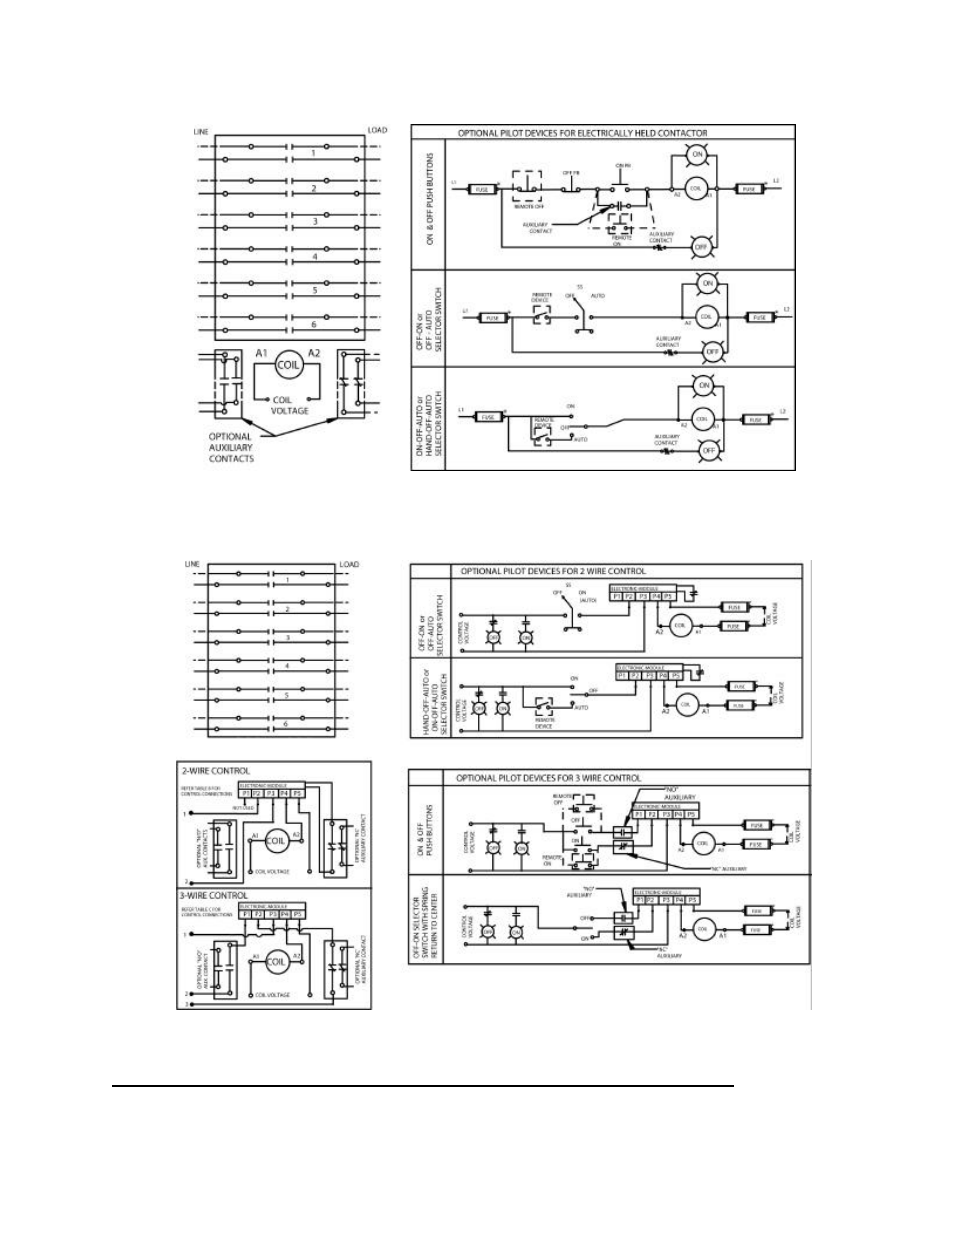 hight resolution of ge 4 pole contactor control diagram wiring diagram blogs hvac contactor relay wiring diagram ge 4 pole contactor control diagram